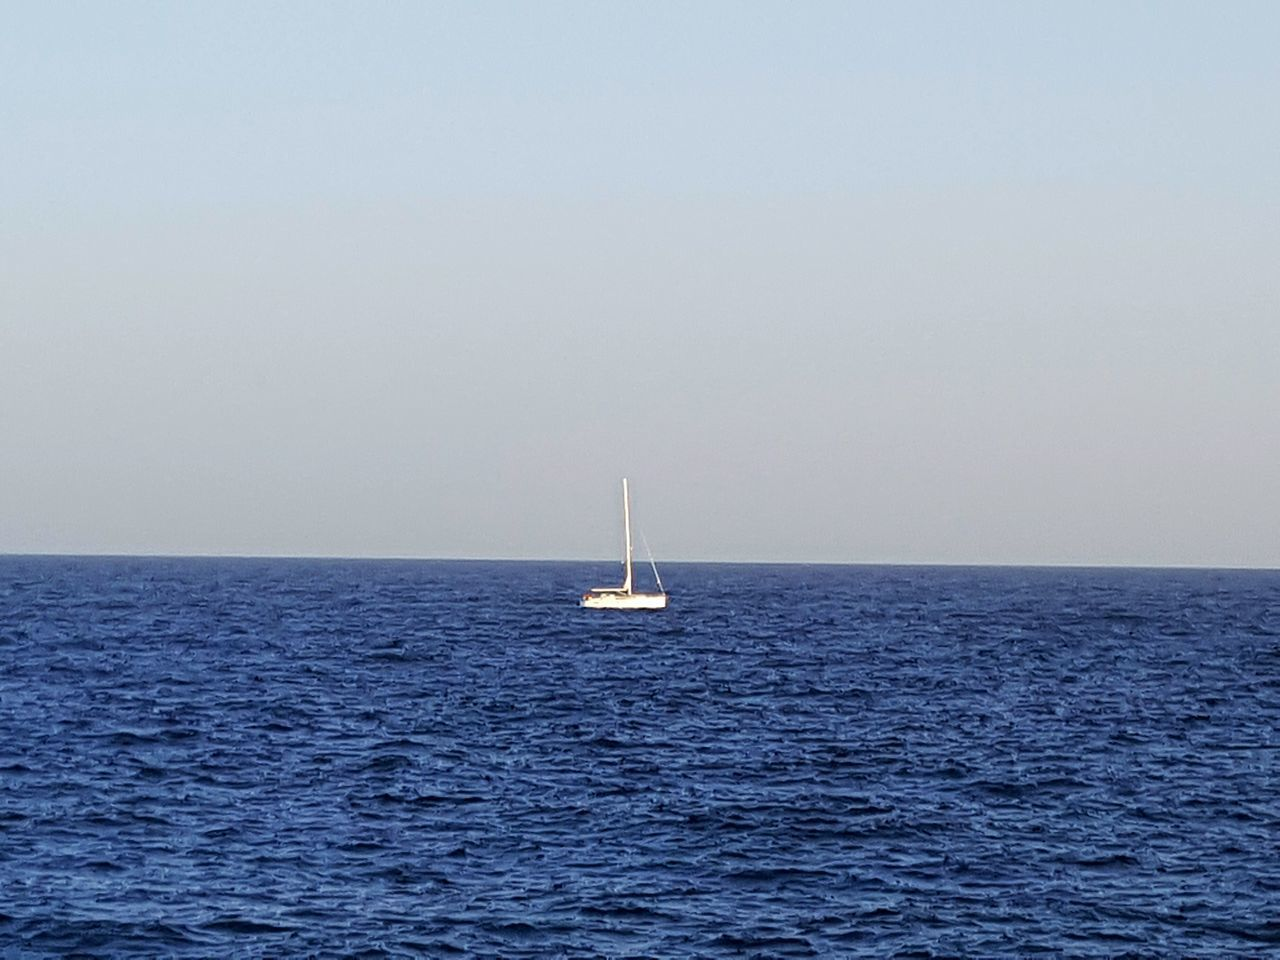 Nautical Vessel Sailing Sea Water Sailboat Transportation Sailing Ship Horizon Over Water Outdoors Sky Yachting Yacht White Sailing Ship One Single Sailboat Sailing Boat Blue Sea And White Sailboat